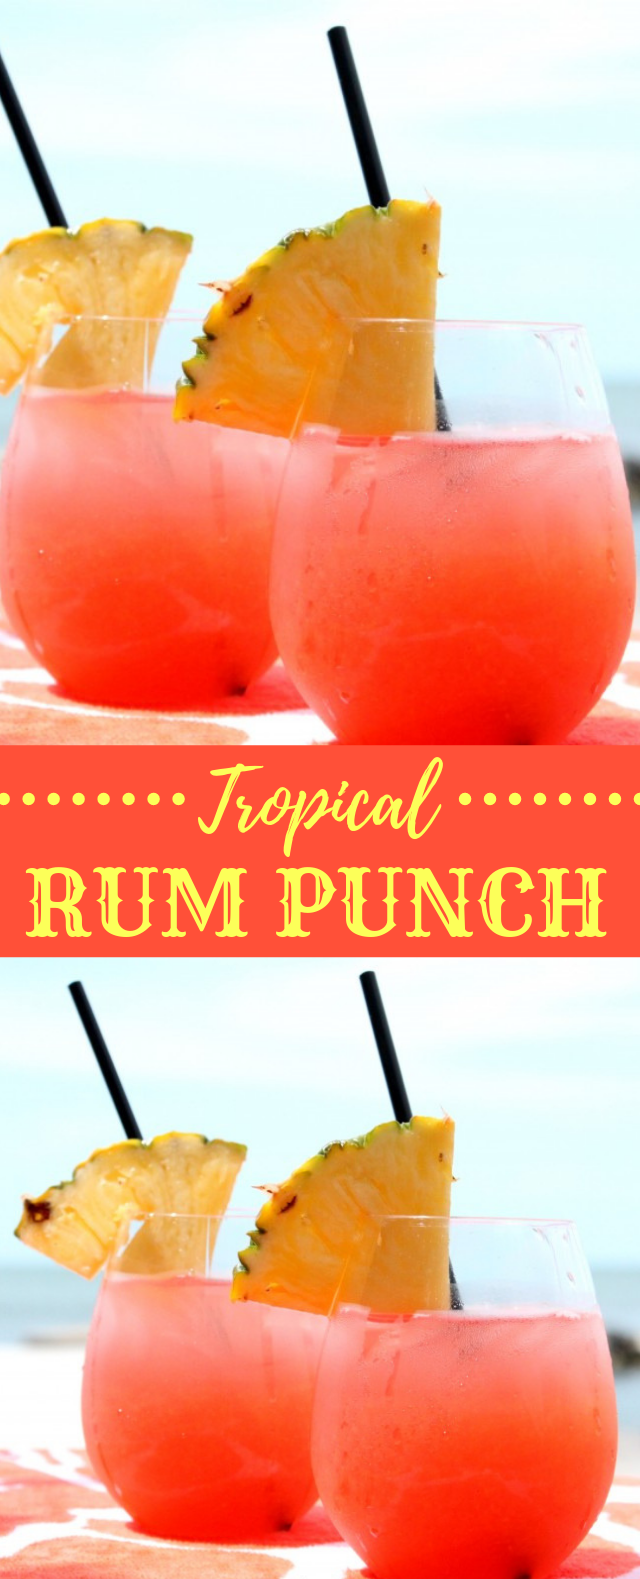 TROPICAL RUM PUNCH RECIPE